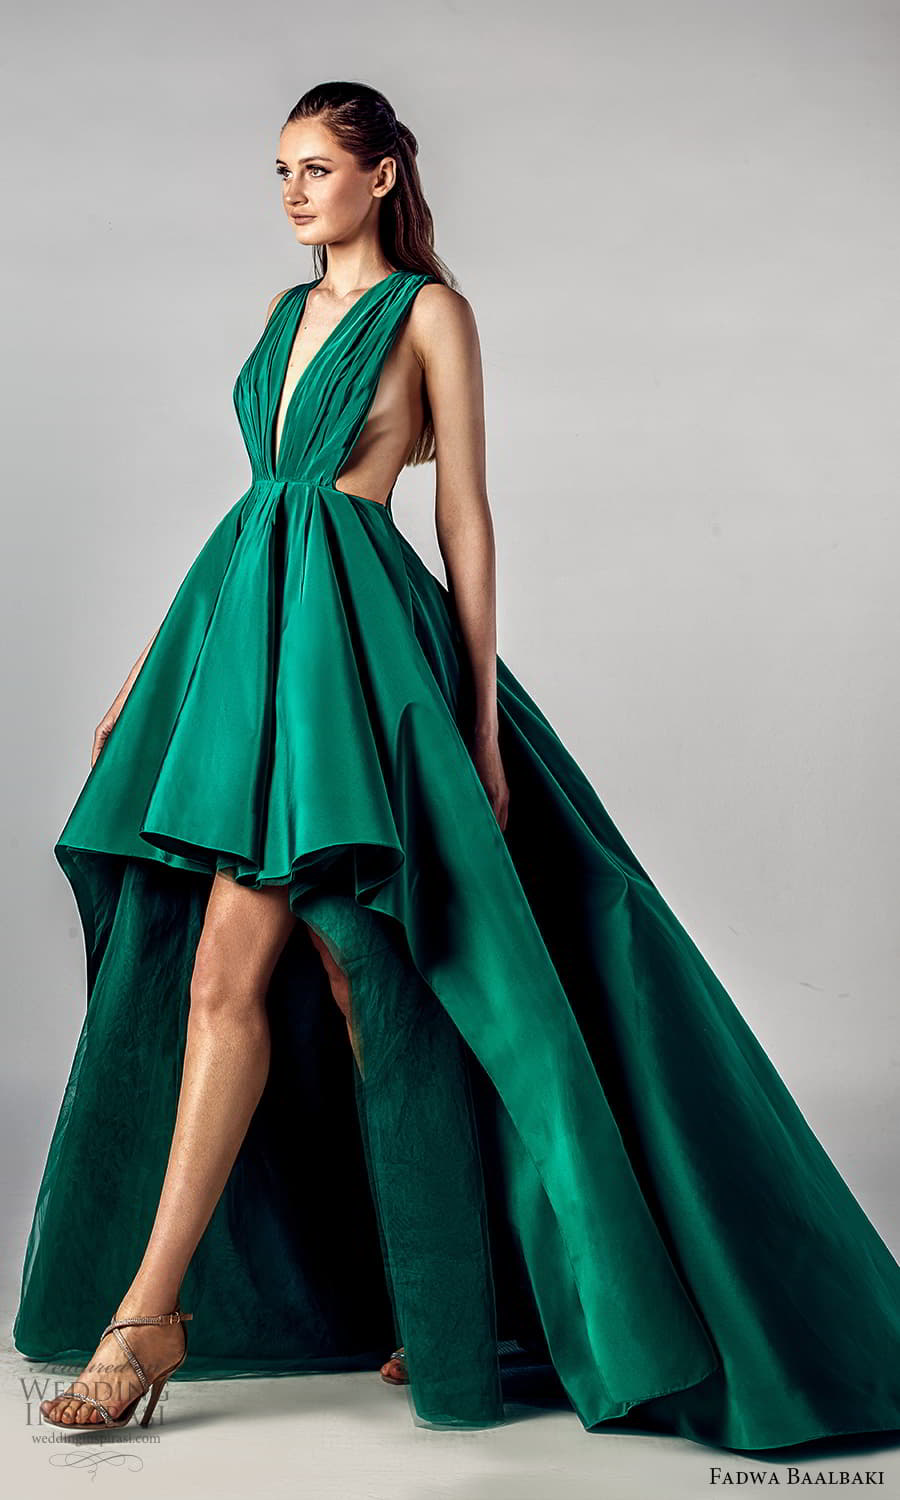 fadwa baalbaki spring 2021 bridal sleeveless thick halter straps plunging v neckline ruched bodice a line ball gown high low wedding dress chapel train green color (7) sv